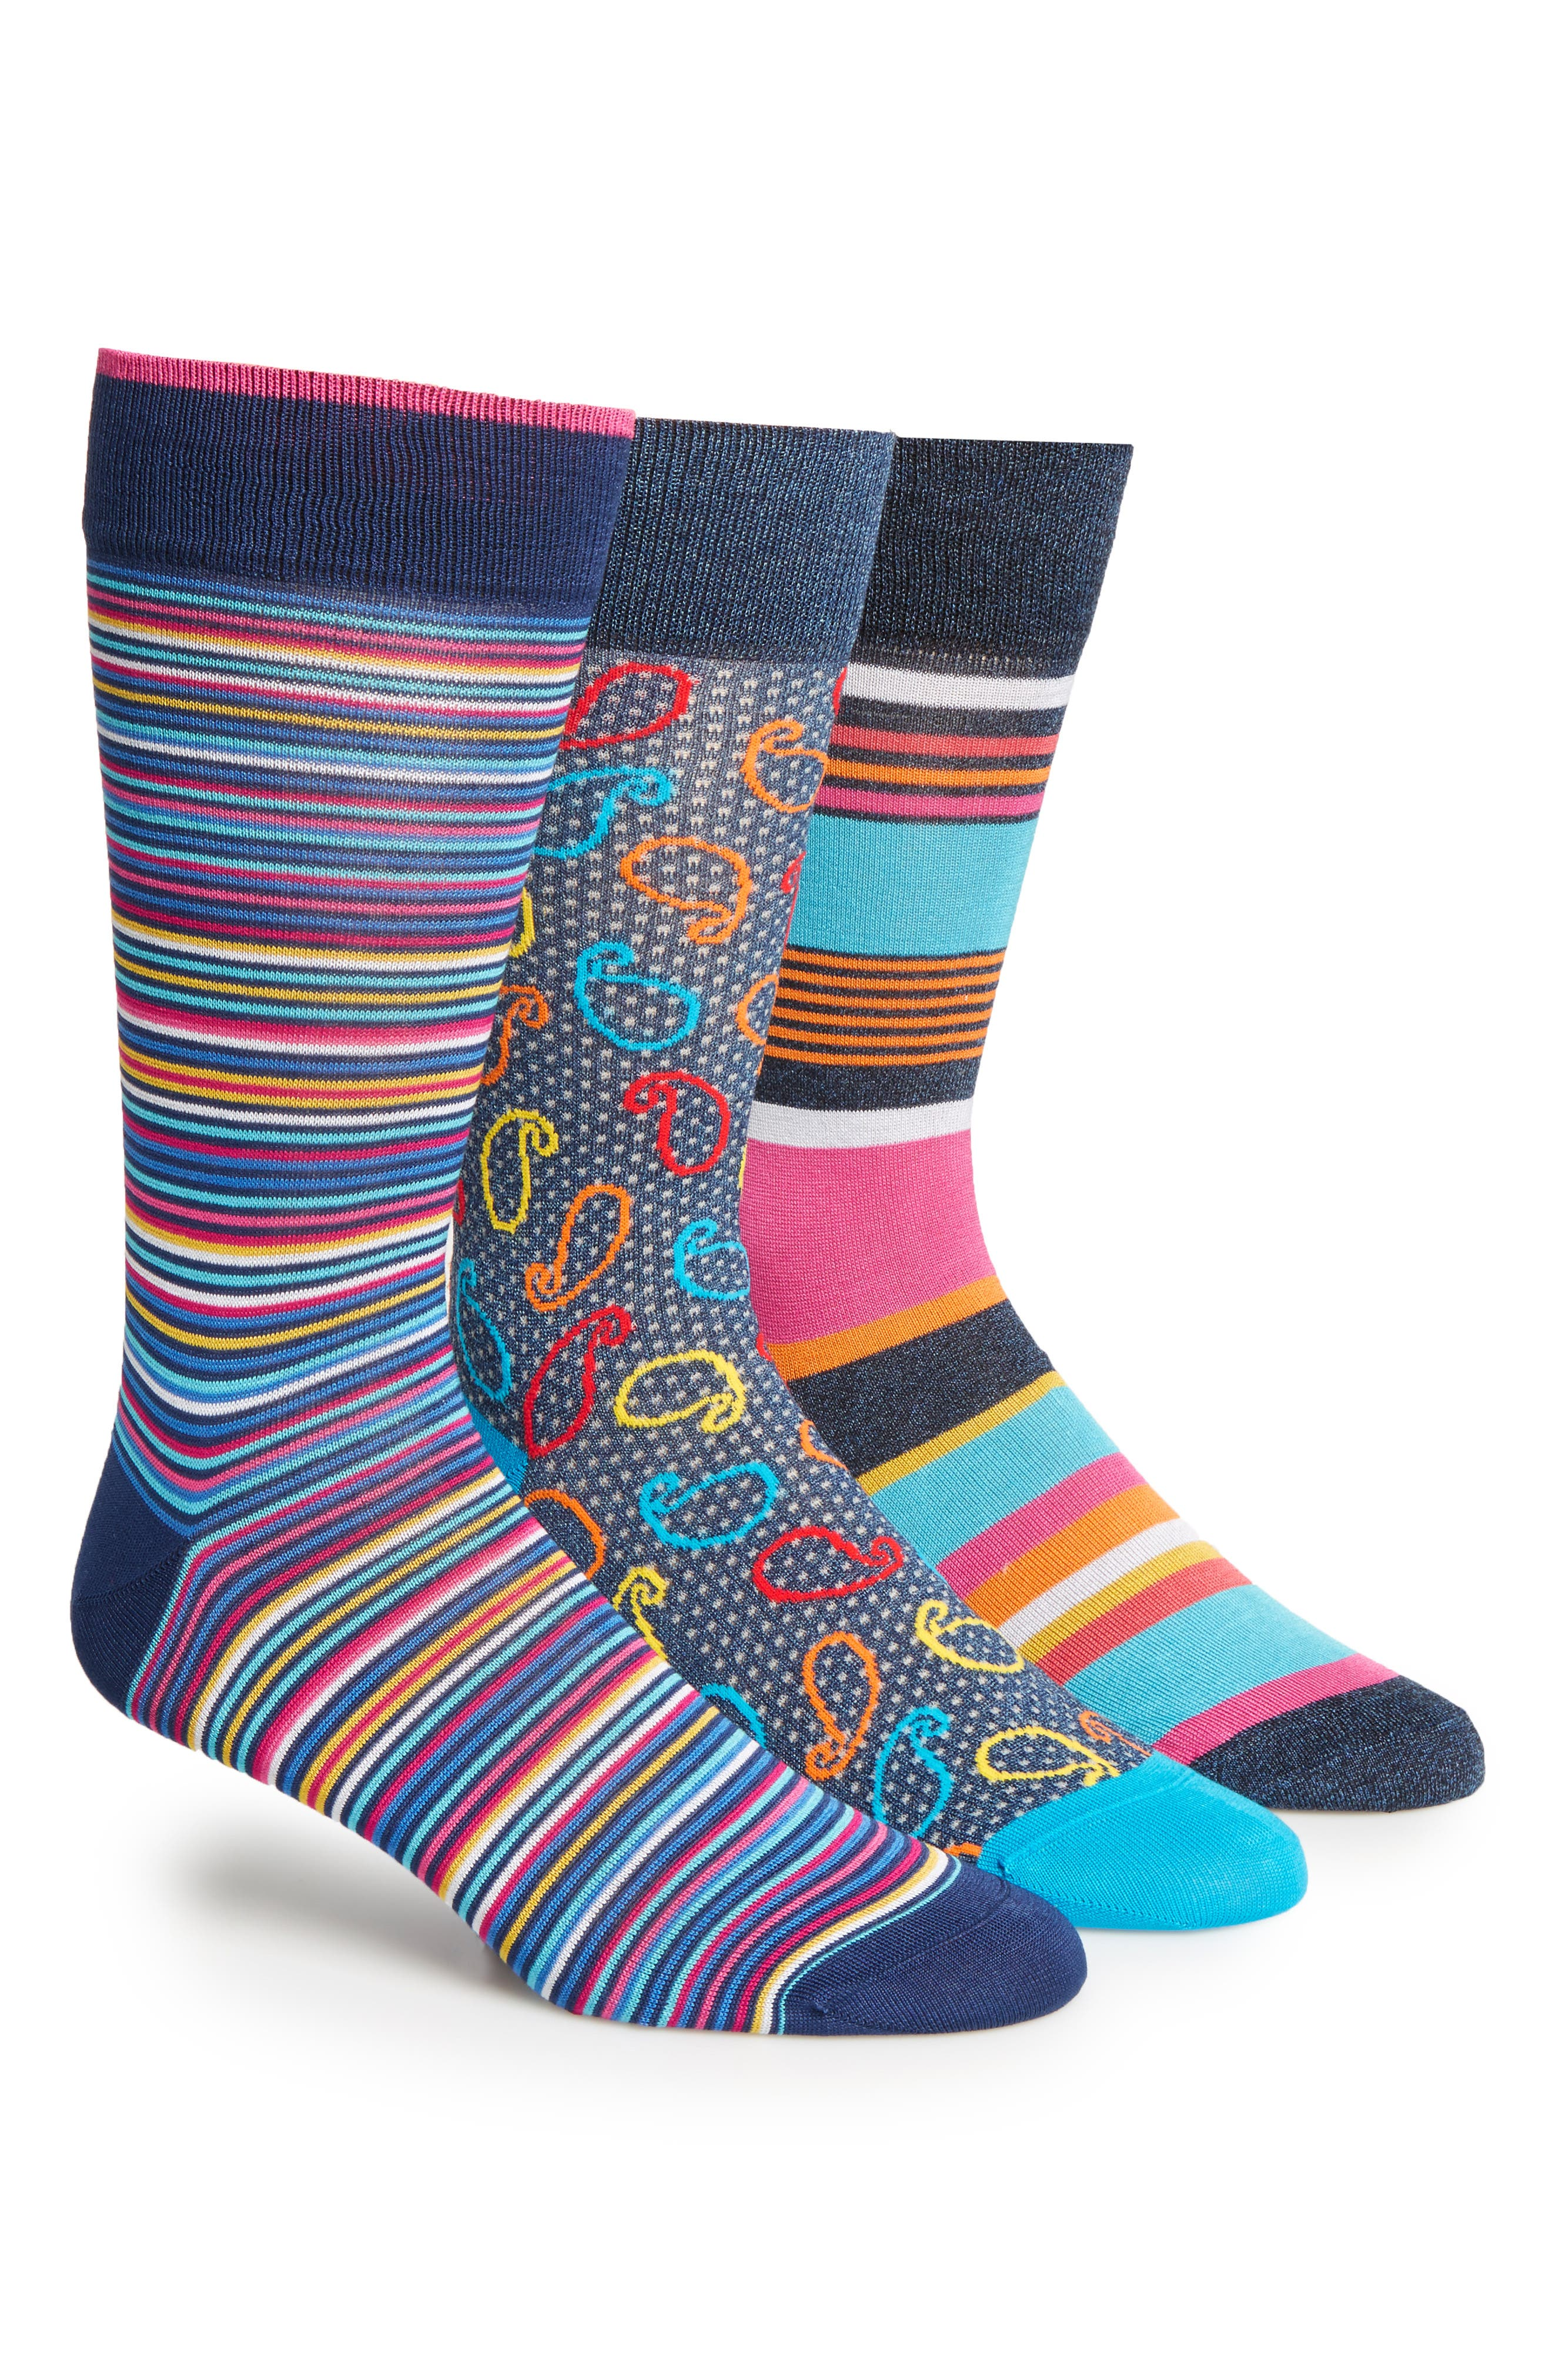 Alternate Image 1 Selected - Bugatchi 3-Pack Cotton Blend Socks